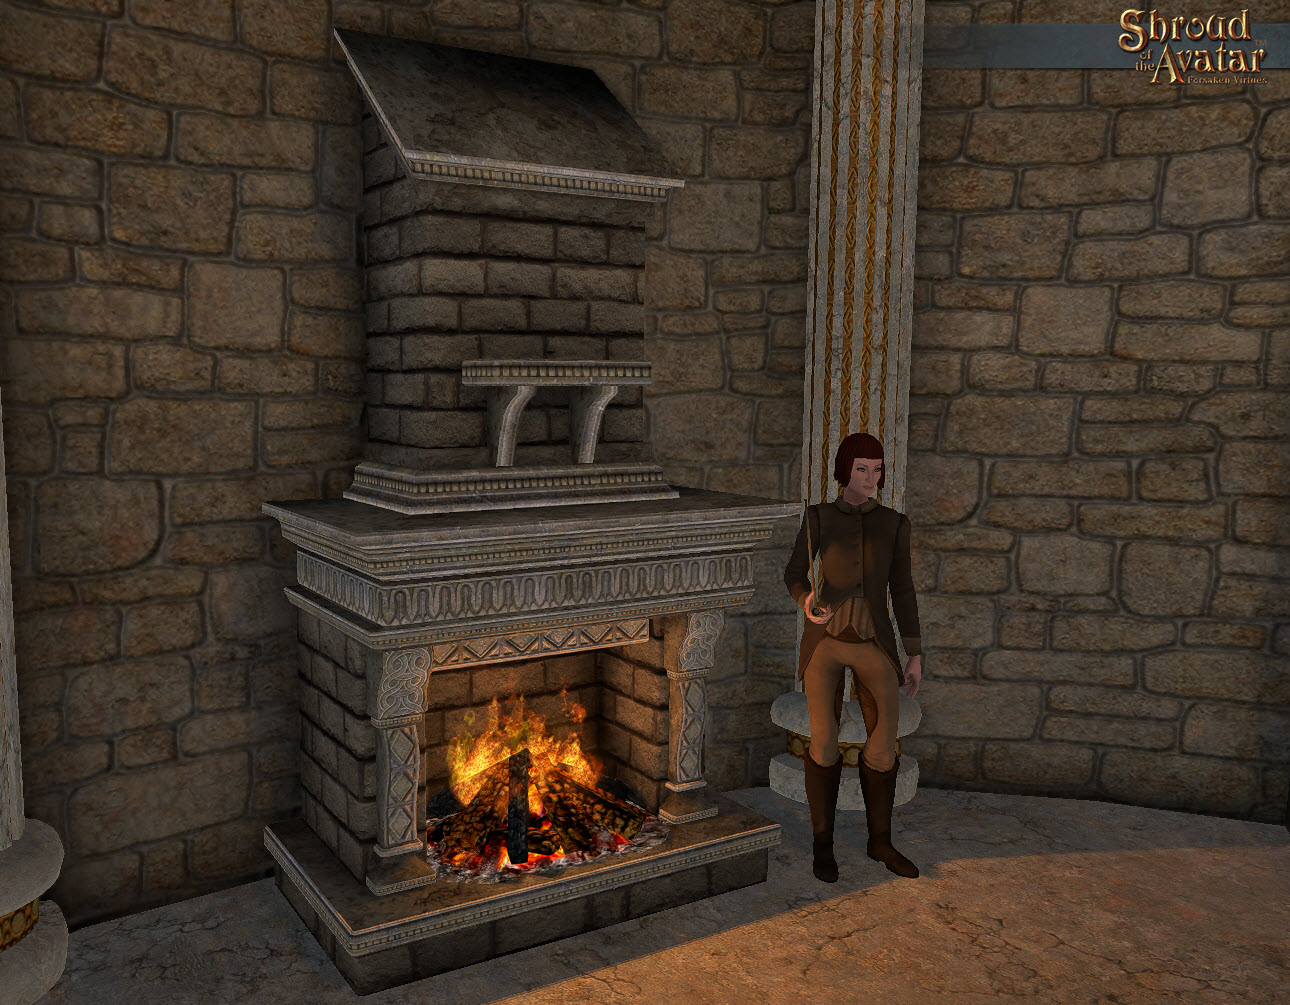 fireplace and chimney.  1 ea Ornate Stone Fireplace Chimney Roof Extension Markee Dragon Game Codes Shroud of The Avatar